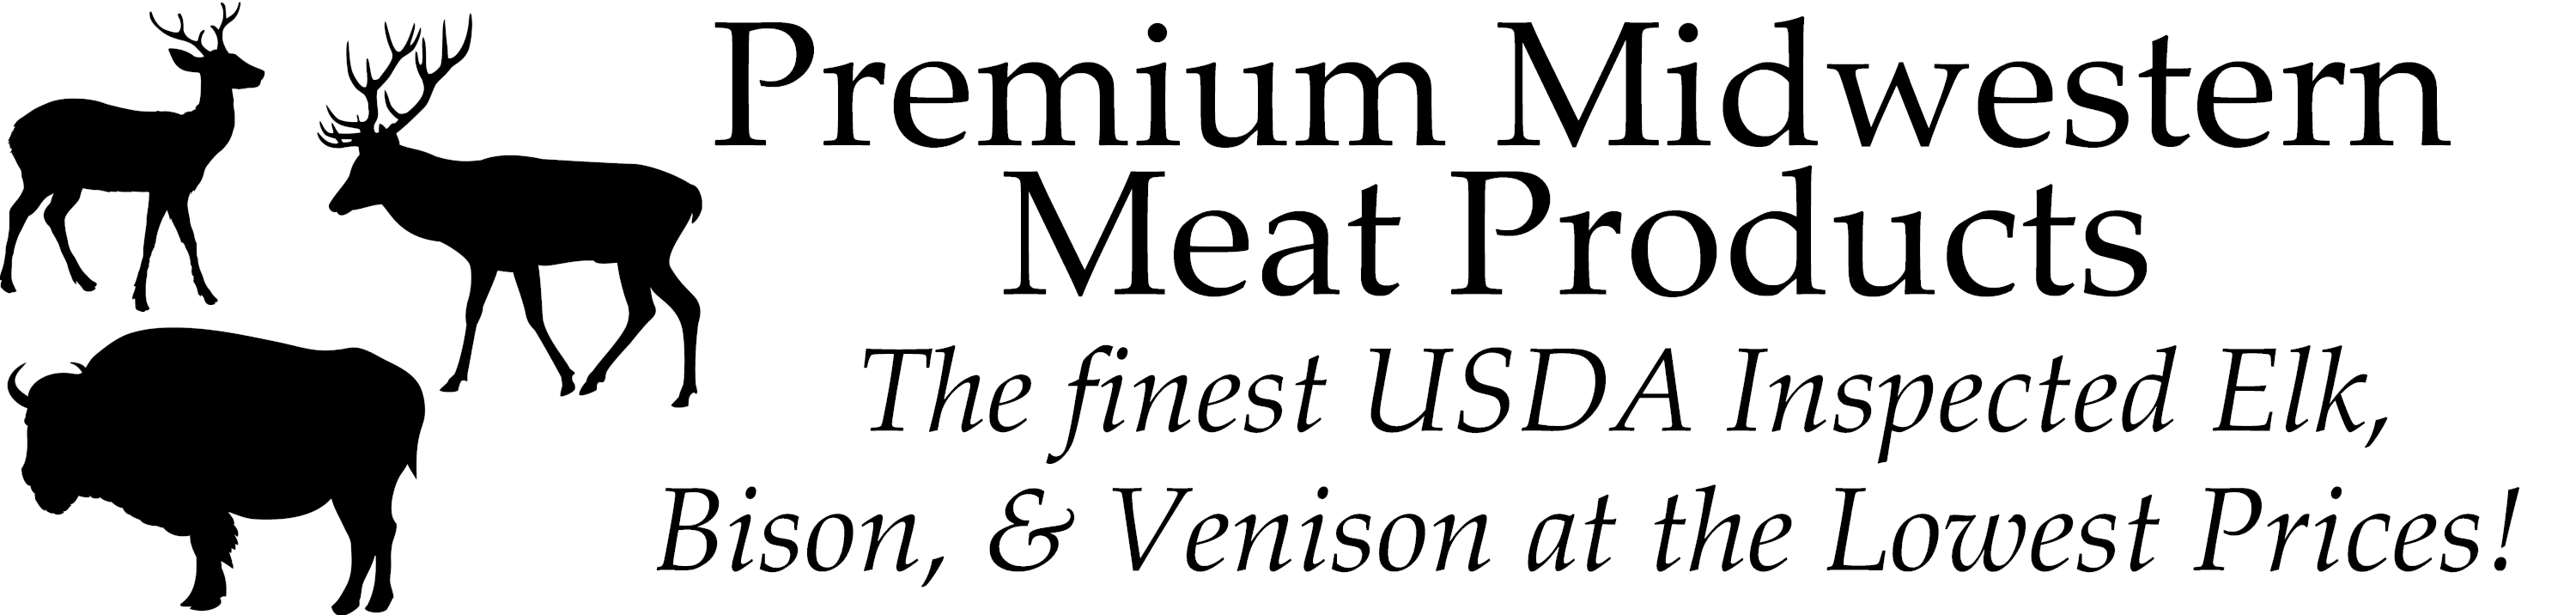 Premium Midwestern Meat Products